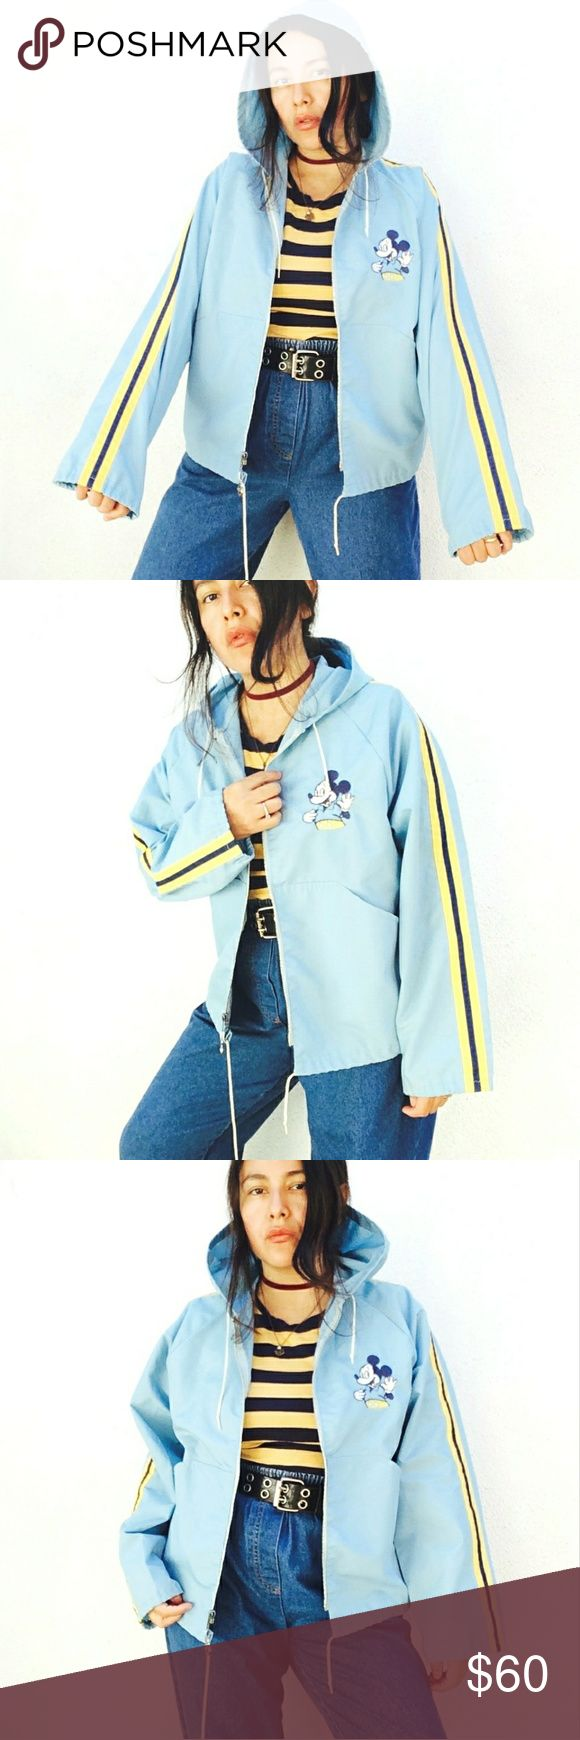 Rare 70s pastel blue Mickey oversized windbreaker Rare and awesome 70's pastel baby blue Disney hooded windbreaker bomber jacket. Size Medium.  You gotta love the color and the sporty vibe of this beauty: powder blue with pastel yellow stripes at sleeves. Lightweight, perfect for all year around.  Features embroired retro Mickey Mouse at chest, big arse hood, zip front close, unusual hidden pockets at sides, semi flare sleeves and waist cord.  Priced acordingly to age and rareness. Believe…